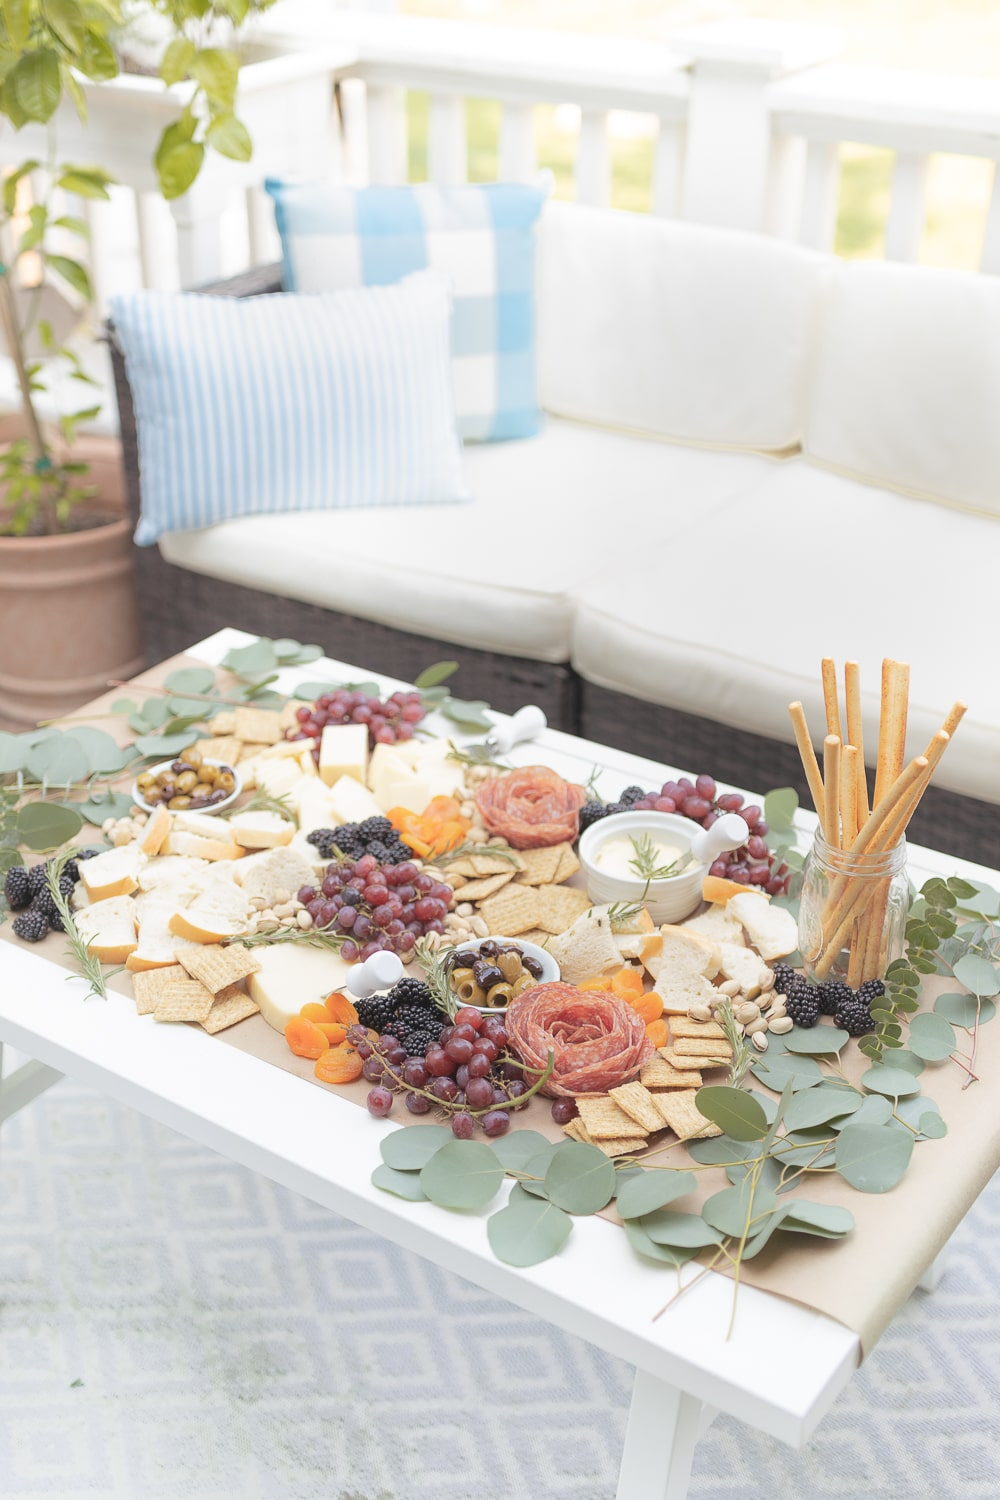 Affordable grazing table ideas from blogger Stephanie Ziajka on Diary of a Debutante